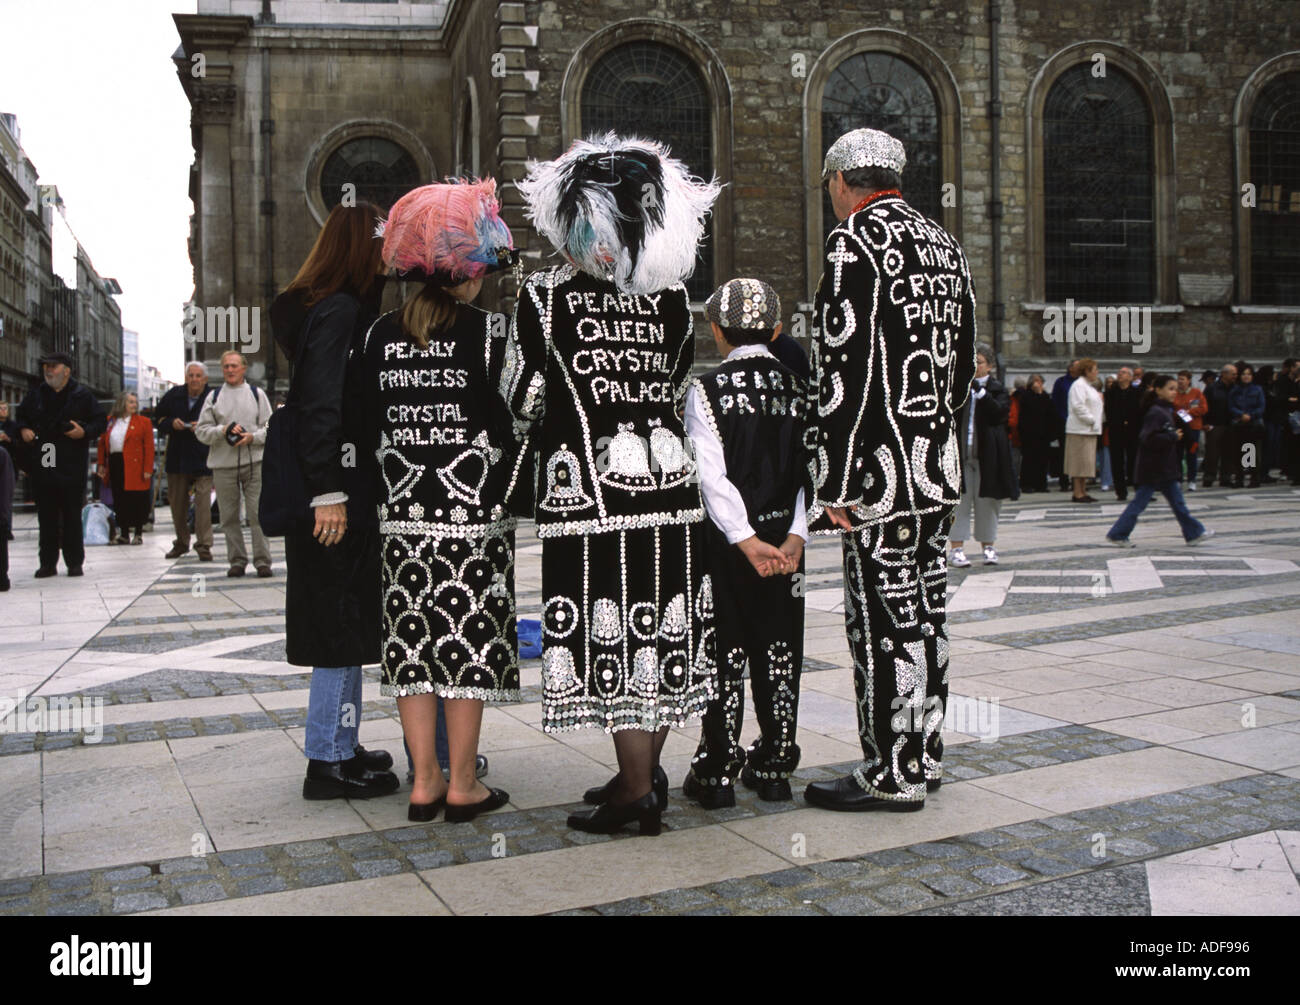 Pearly Kings and Queens at the Guildhall in London - Stock Image